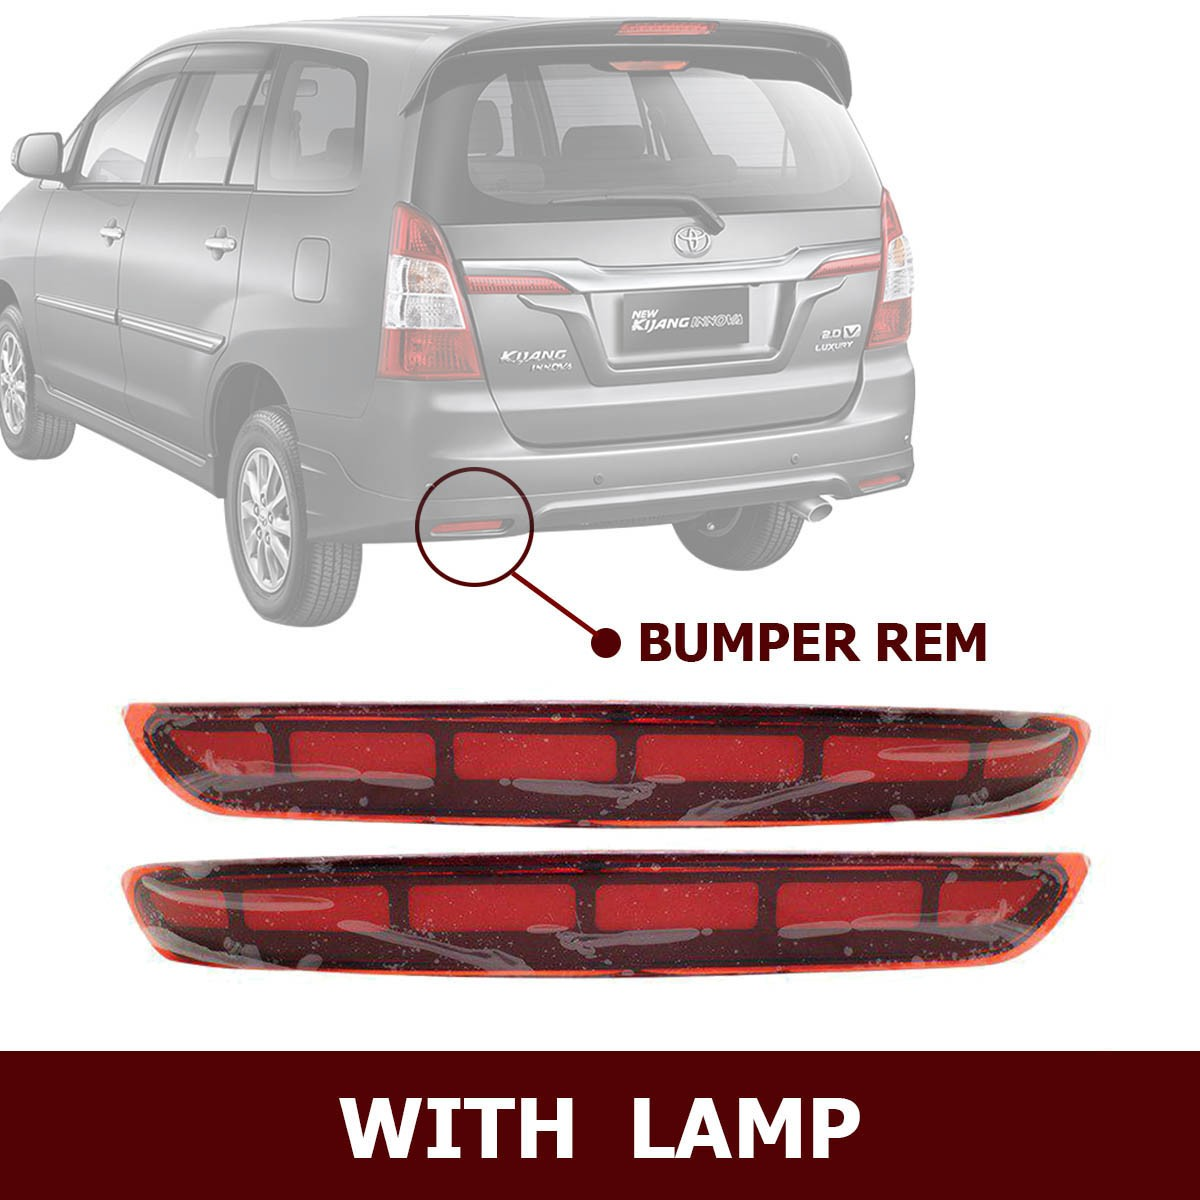 HIRO REAR REFLEKTOR LED BUMPER REM WITH LAMP FOR TOYOTA INNOVA 2017